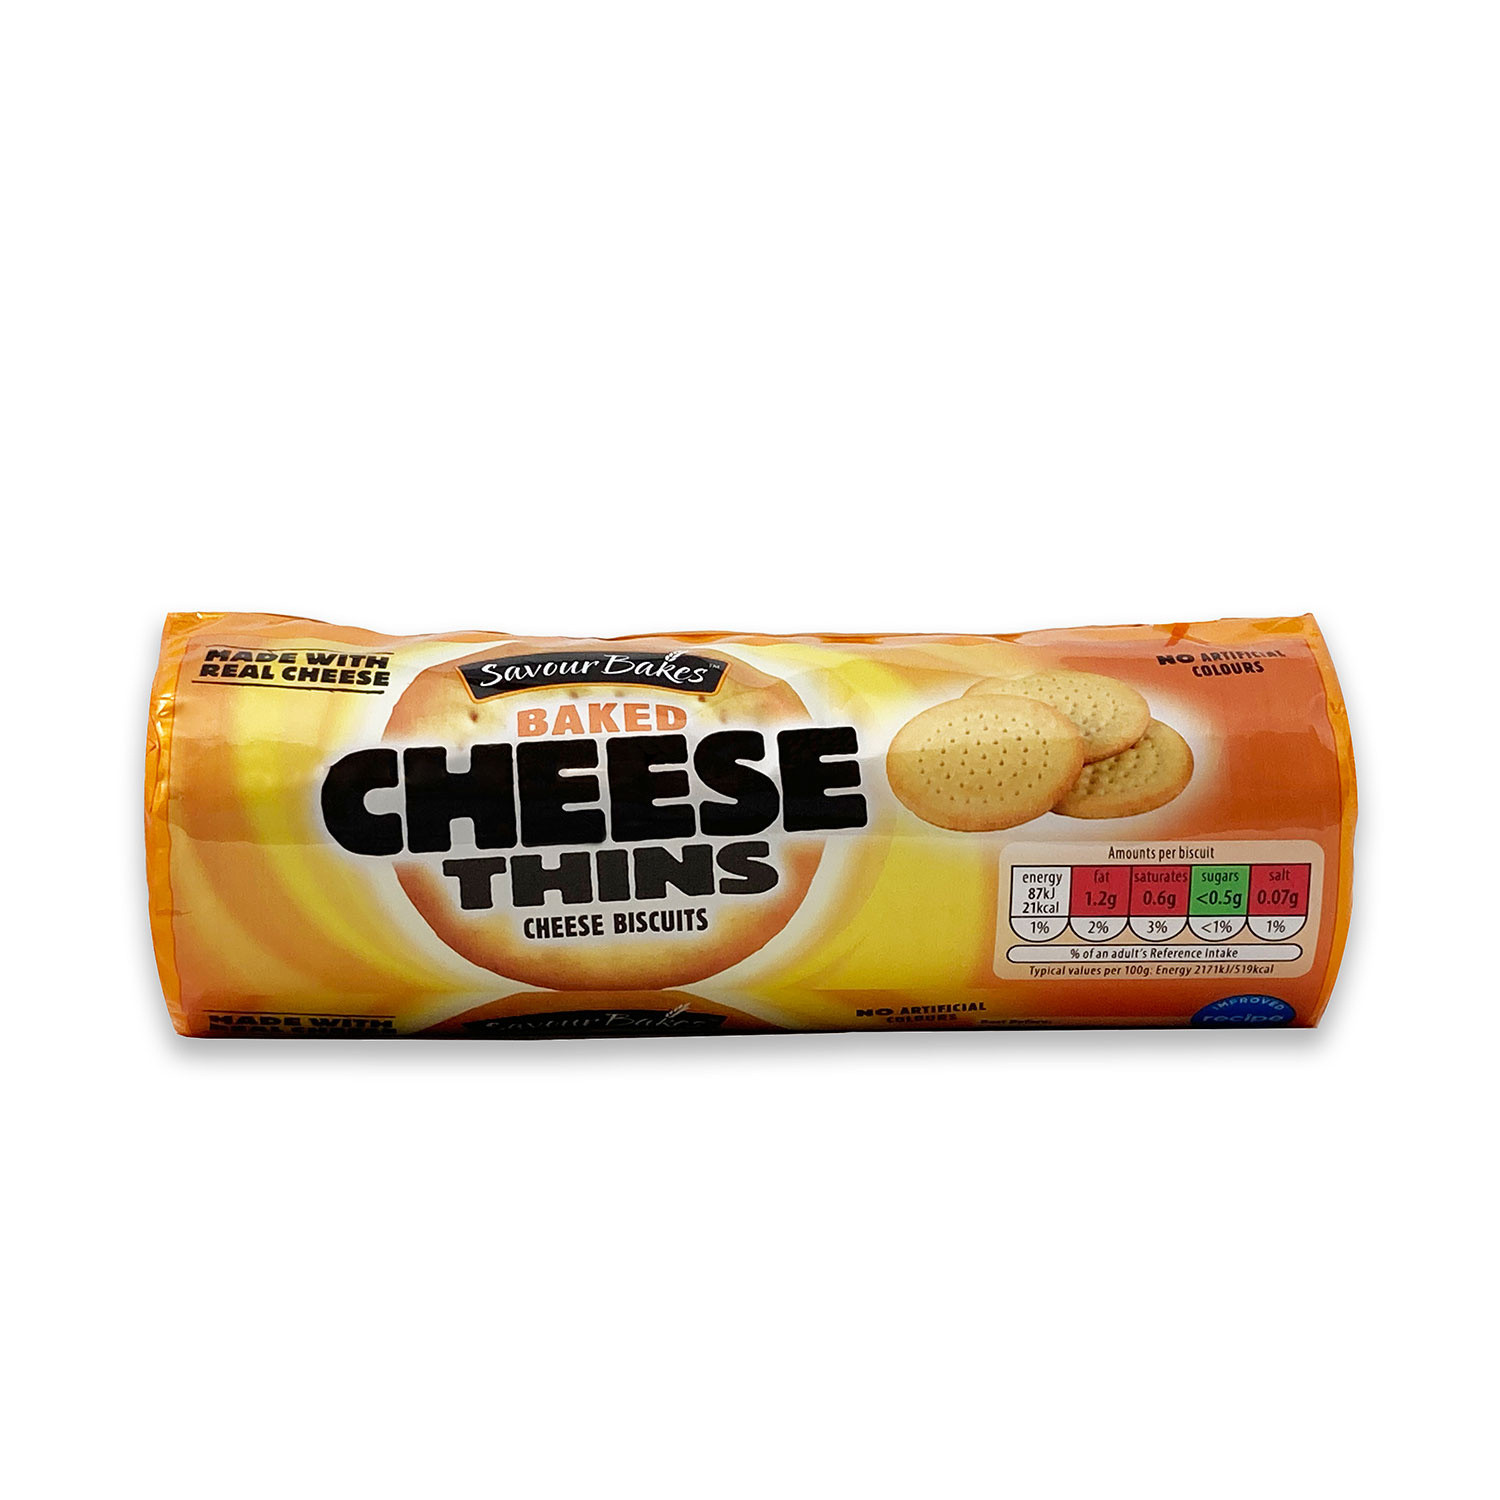 Baked Cheese Thins